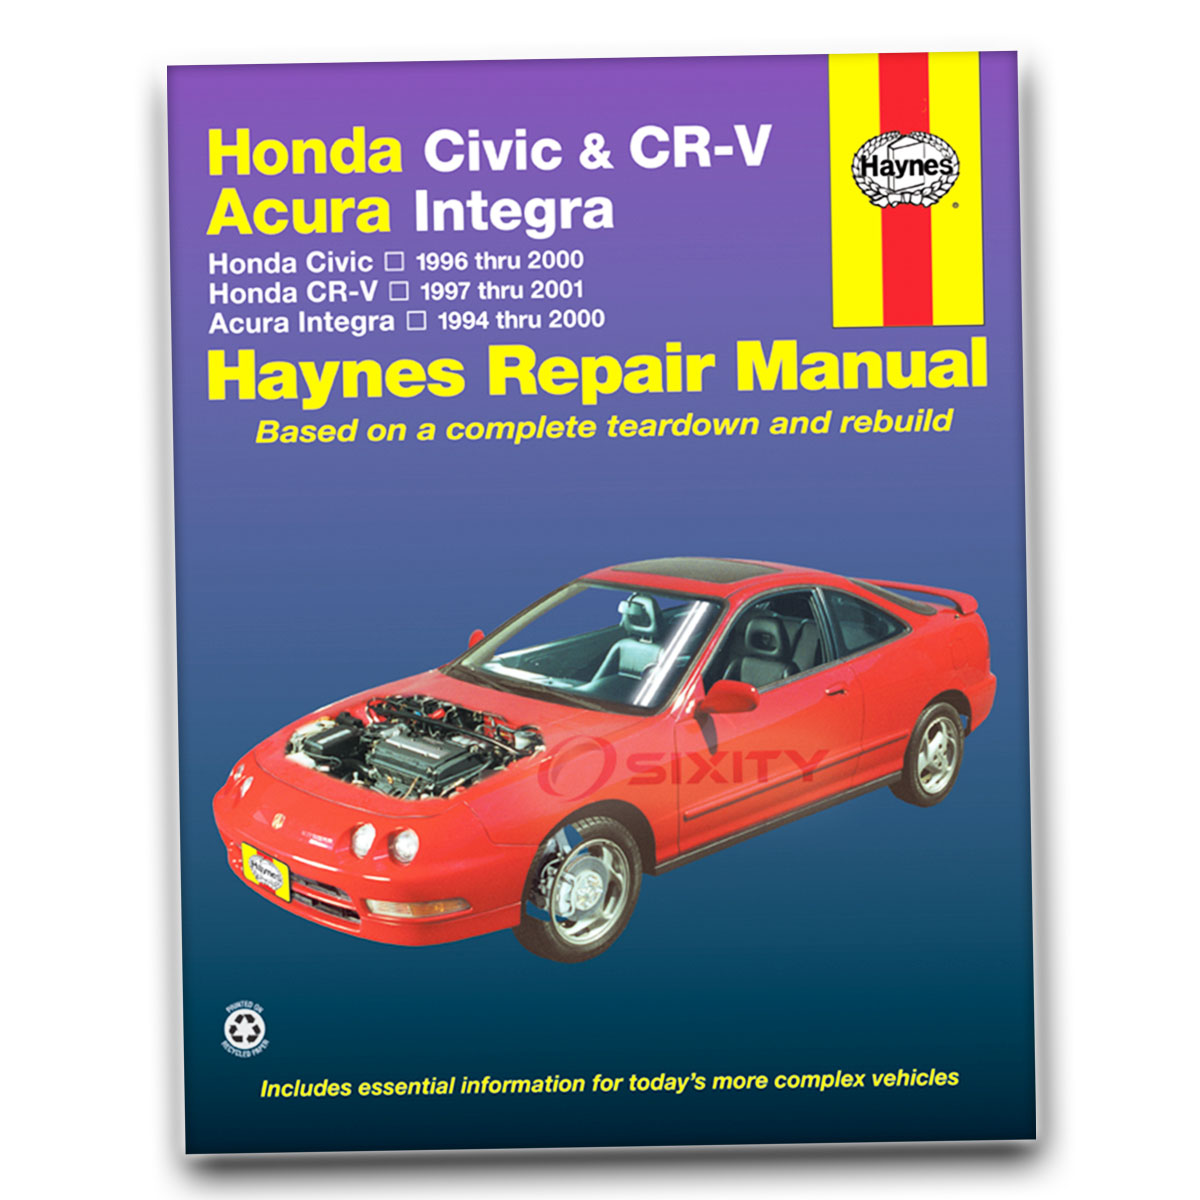 haynes repair manual for honda civic lx si value package ex cx gx dx rh ebay com 1996 Honda Civic 4 Door honda civic repair manual years 1996 to 2000